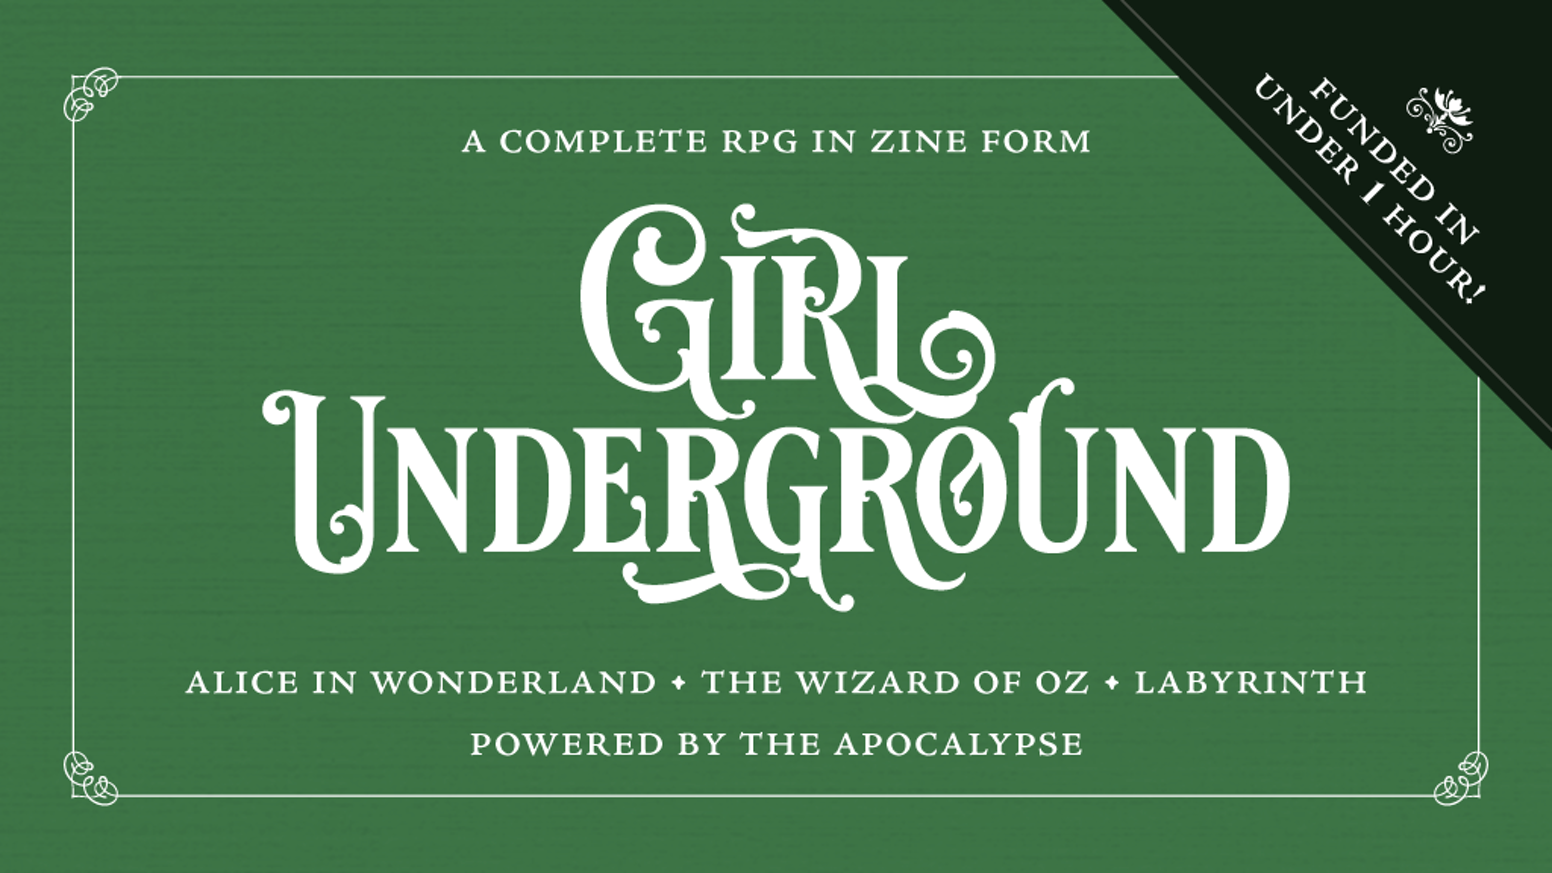 A tabletop RPG about a curious girl in a wondrous world, for telling stories like Alice in Wonderland or The Wizard of Oz.